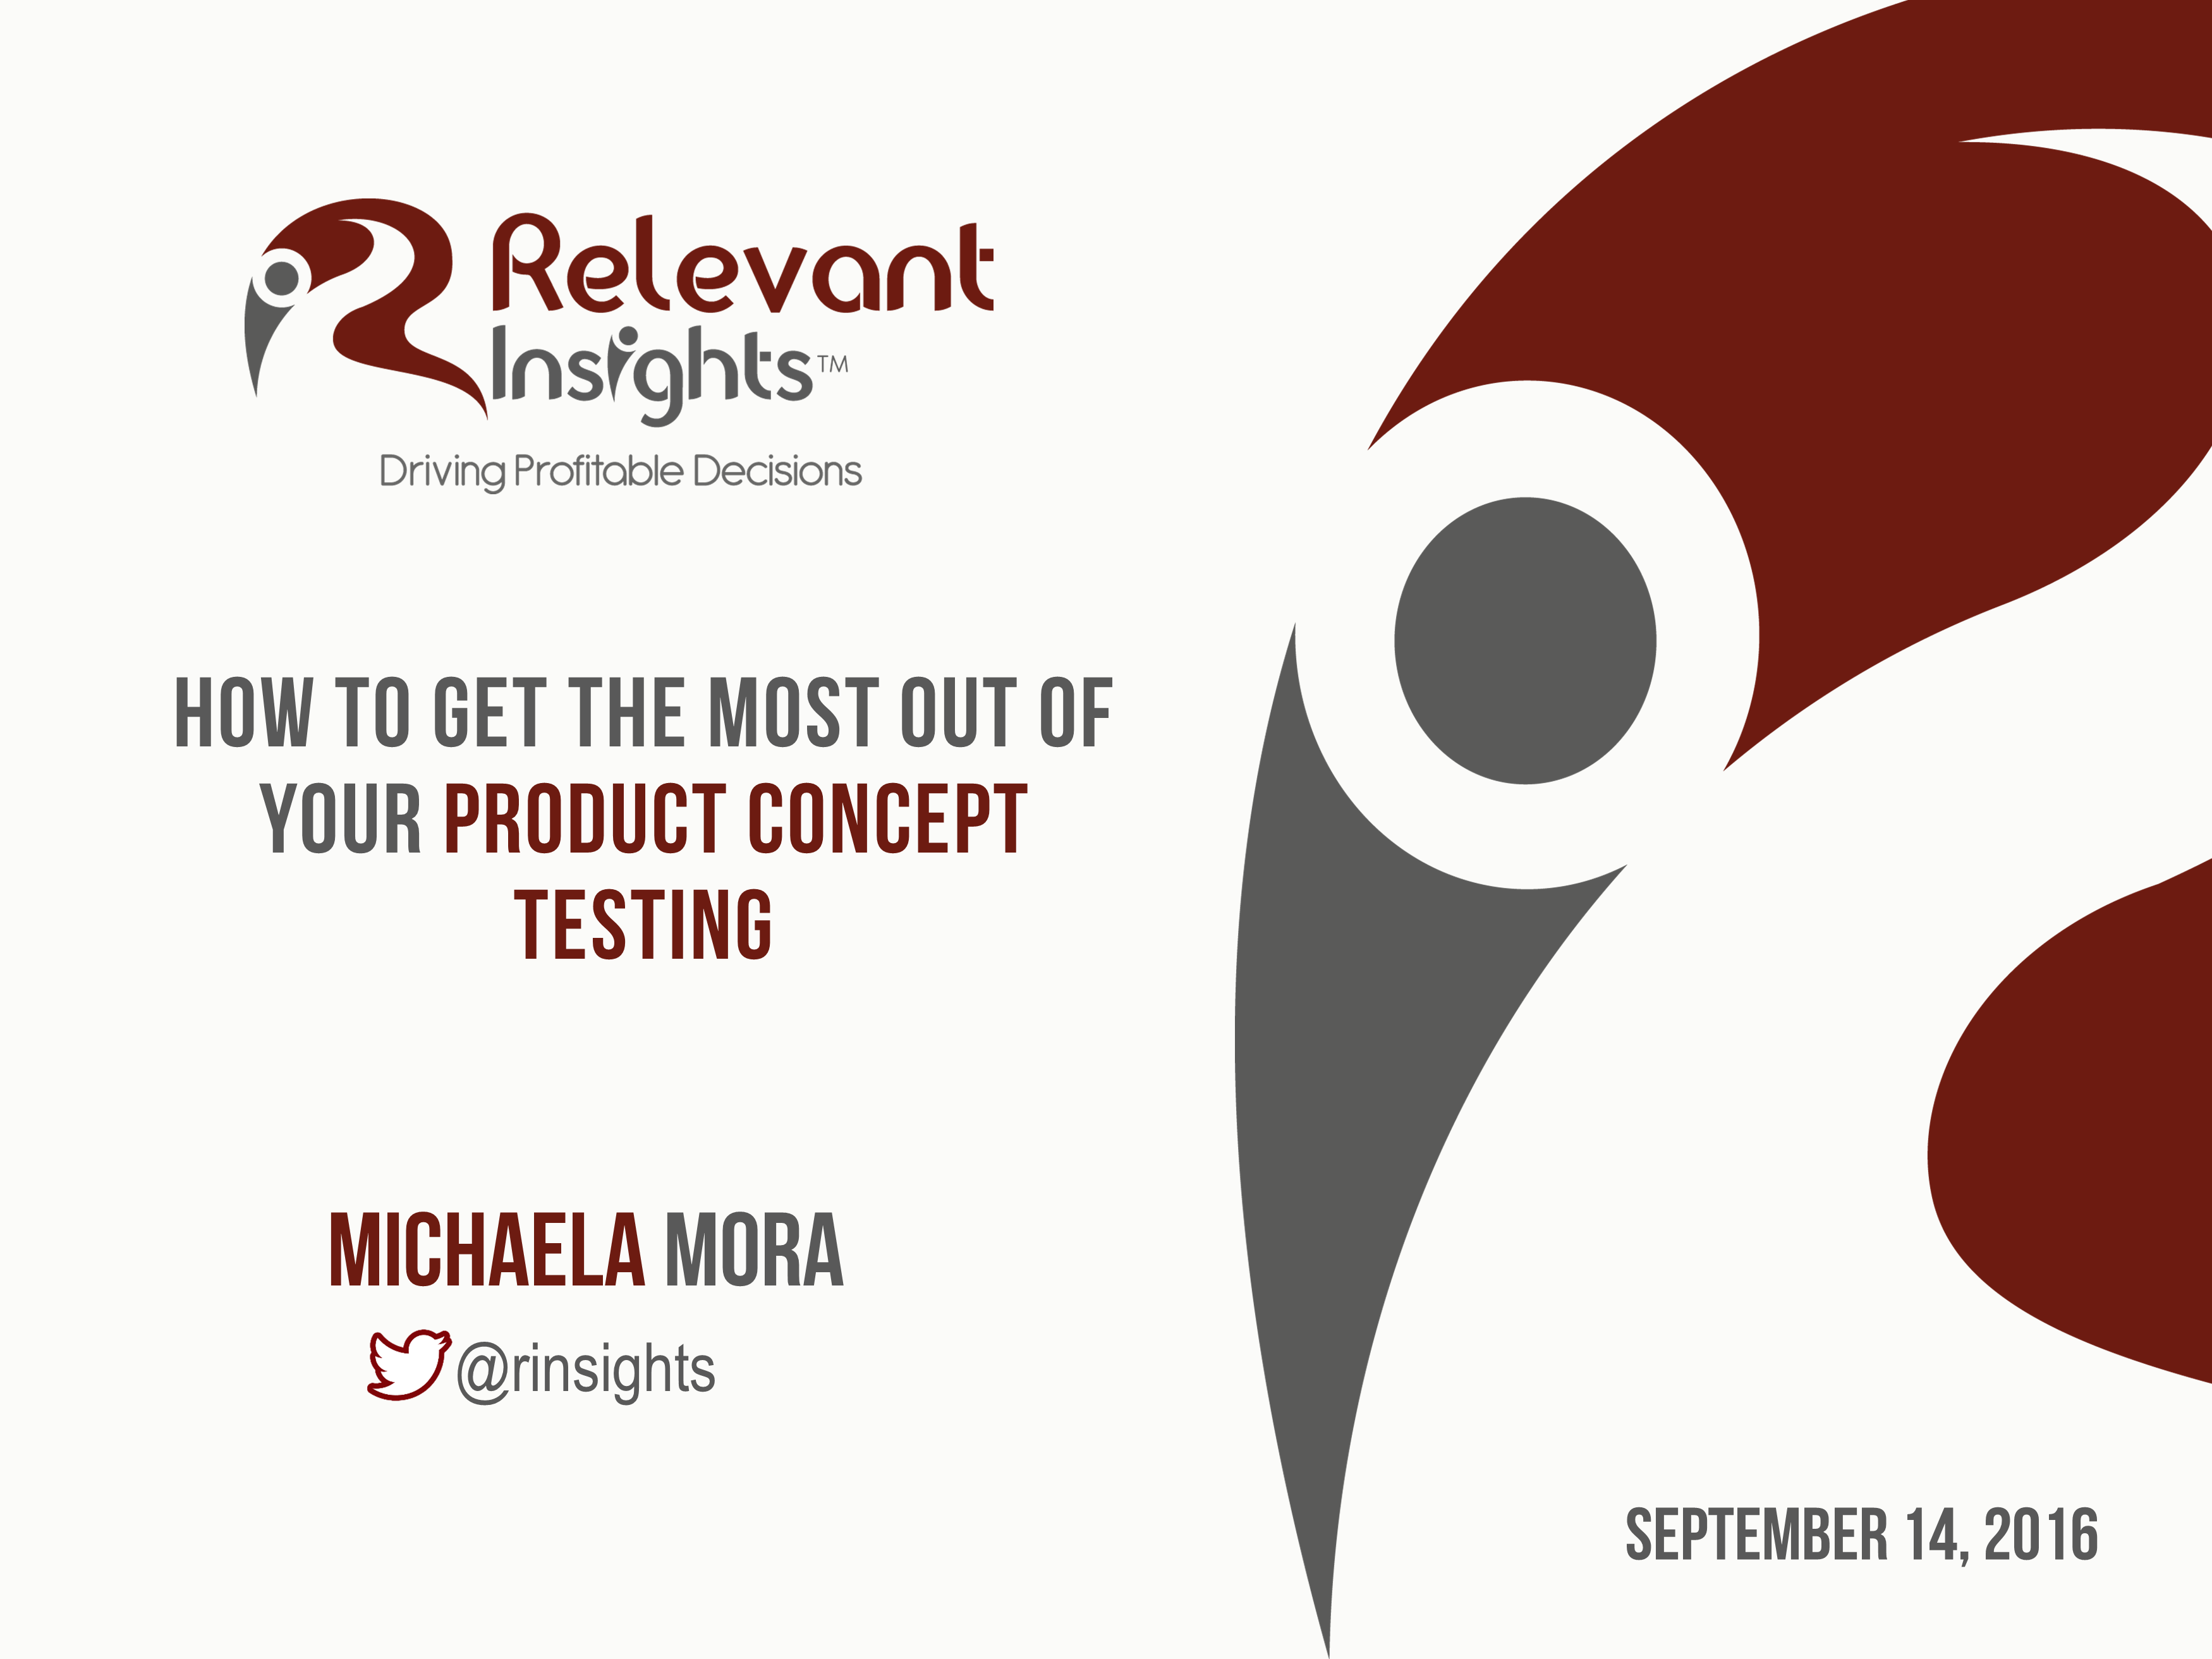 How To Get The Most Out of Concept Testing